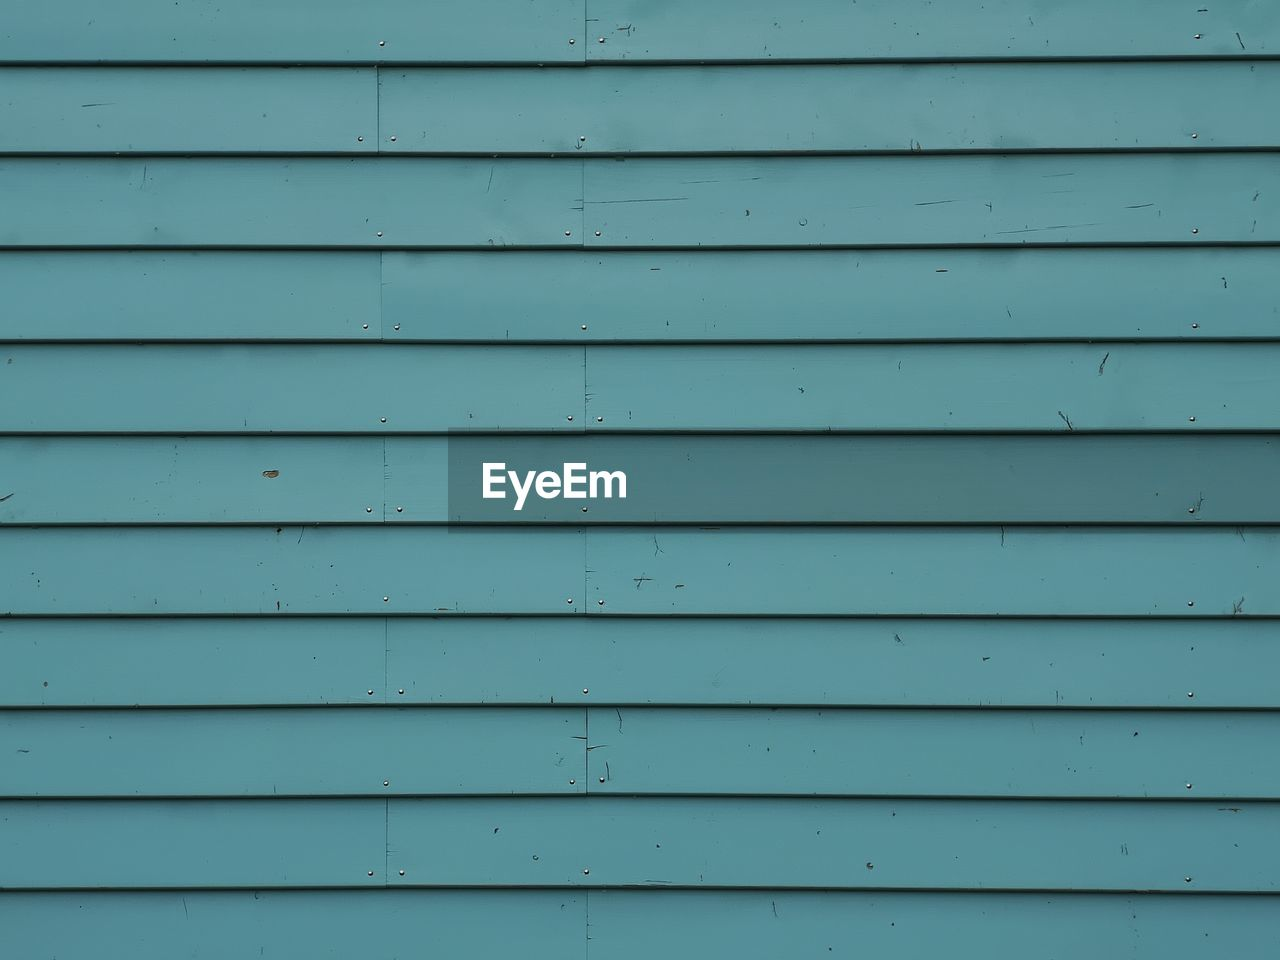 backgrounds, full frame, pattern, architecture, wall - building feature, no people, repetition, day, built structure, safety, outdoors, textured, wood - material, close-up, metal, security, protection, shutter, in a row, wall, corrugated, iron, turquoise colored, garage